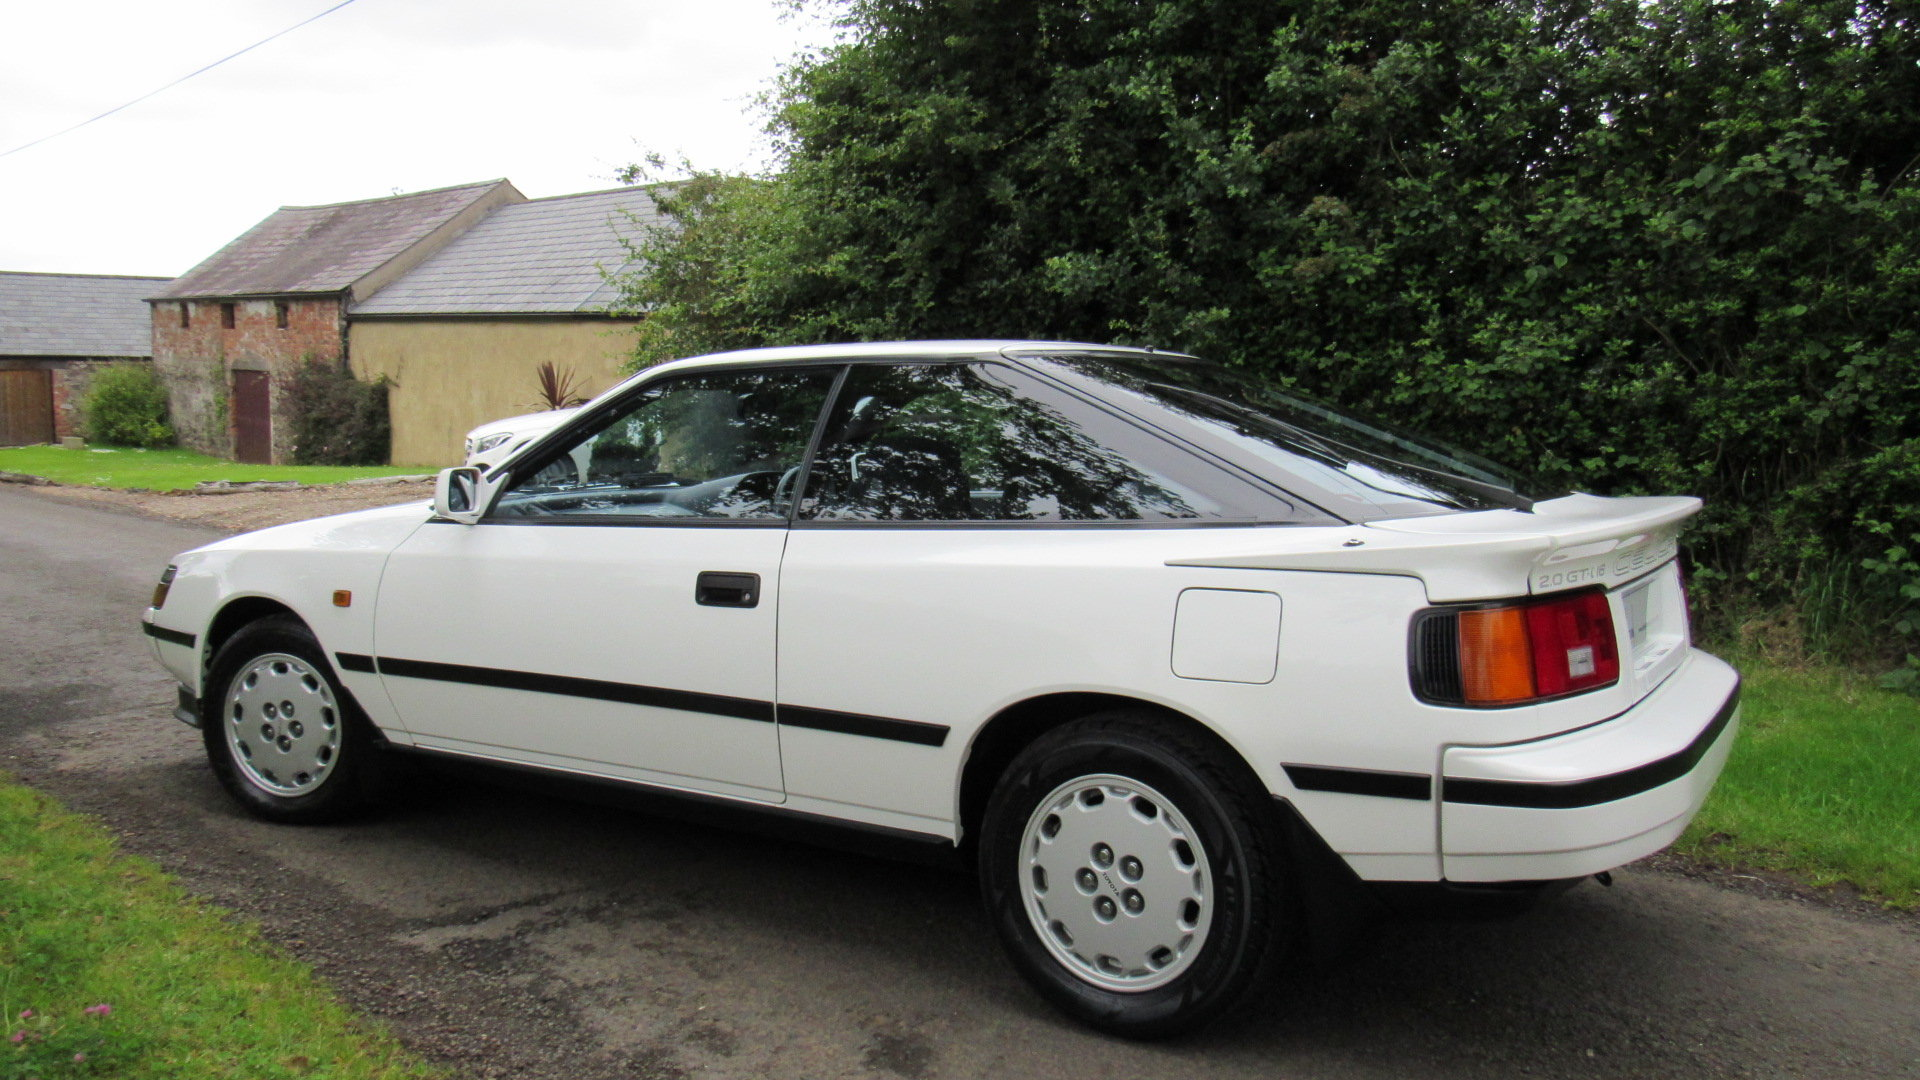 1988 Toyota Celica GT  For Sale (picture 1 of 5)